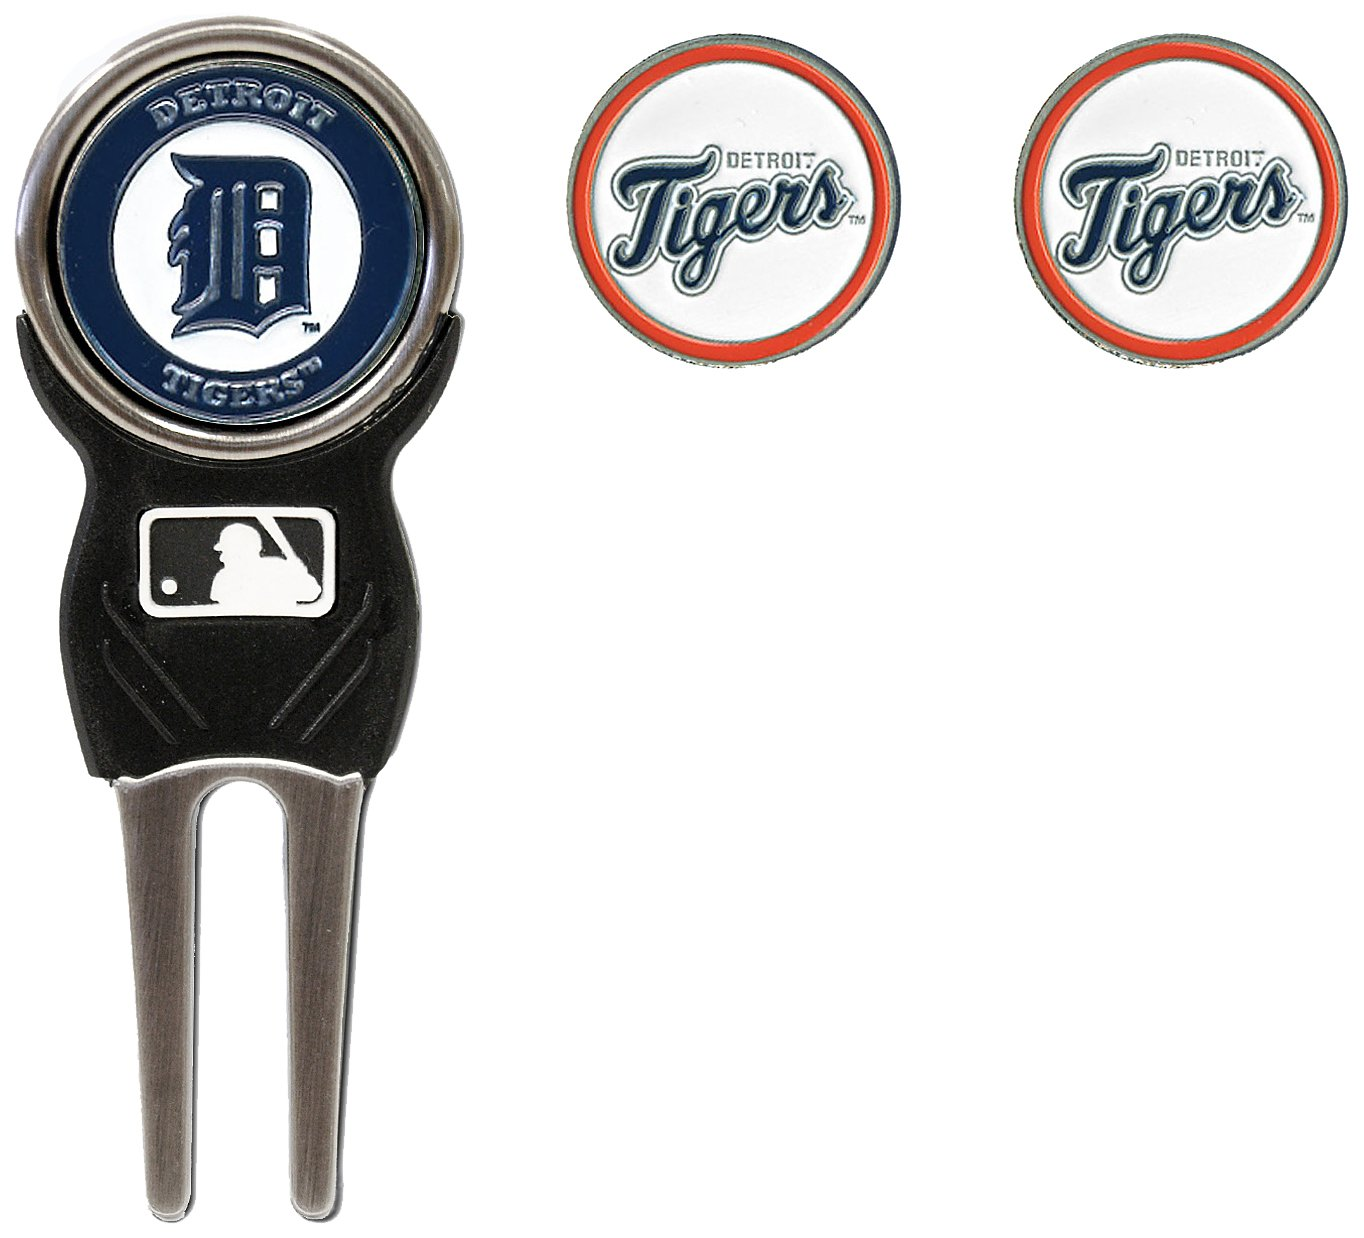 MLB Detroit Tigers Divot Tool Pack With 3 Golf Ball Markers